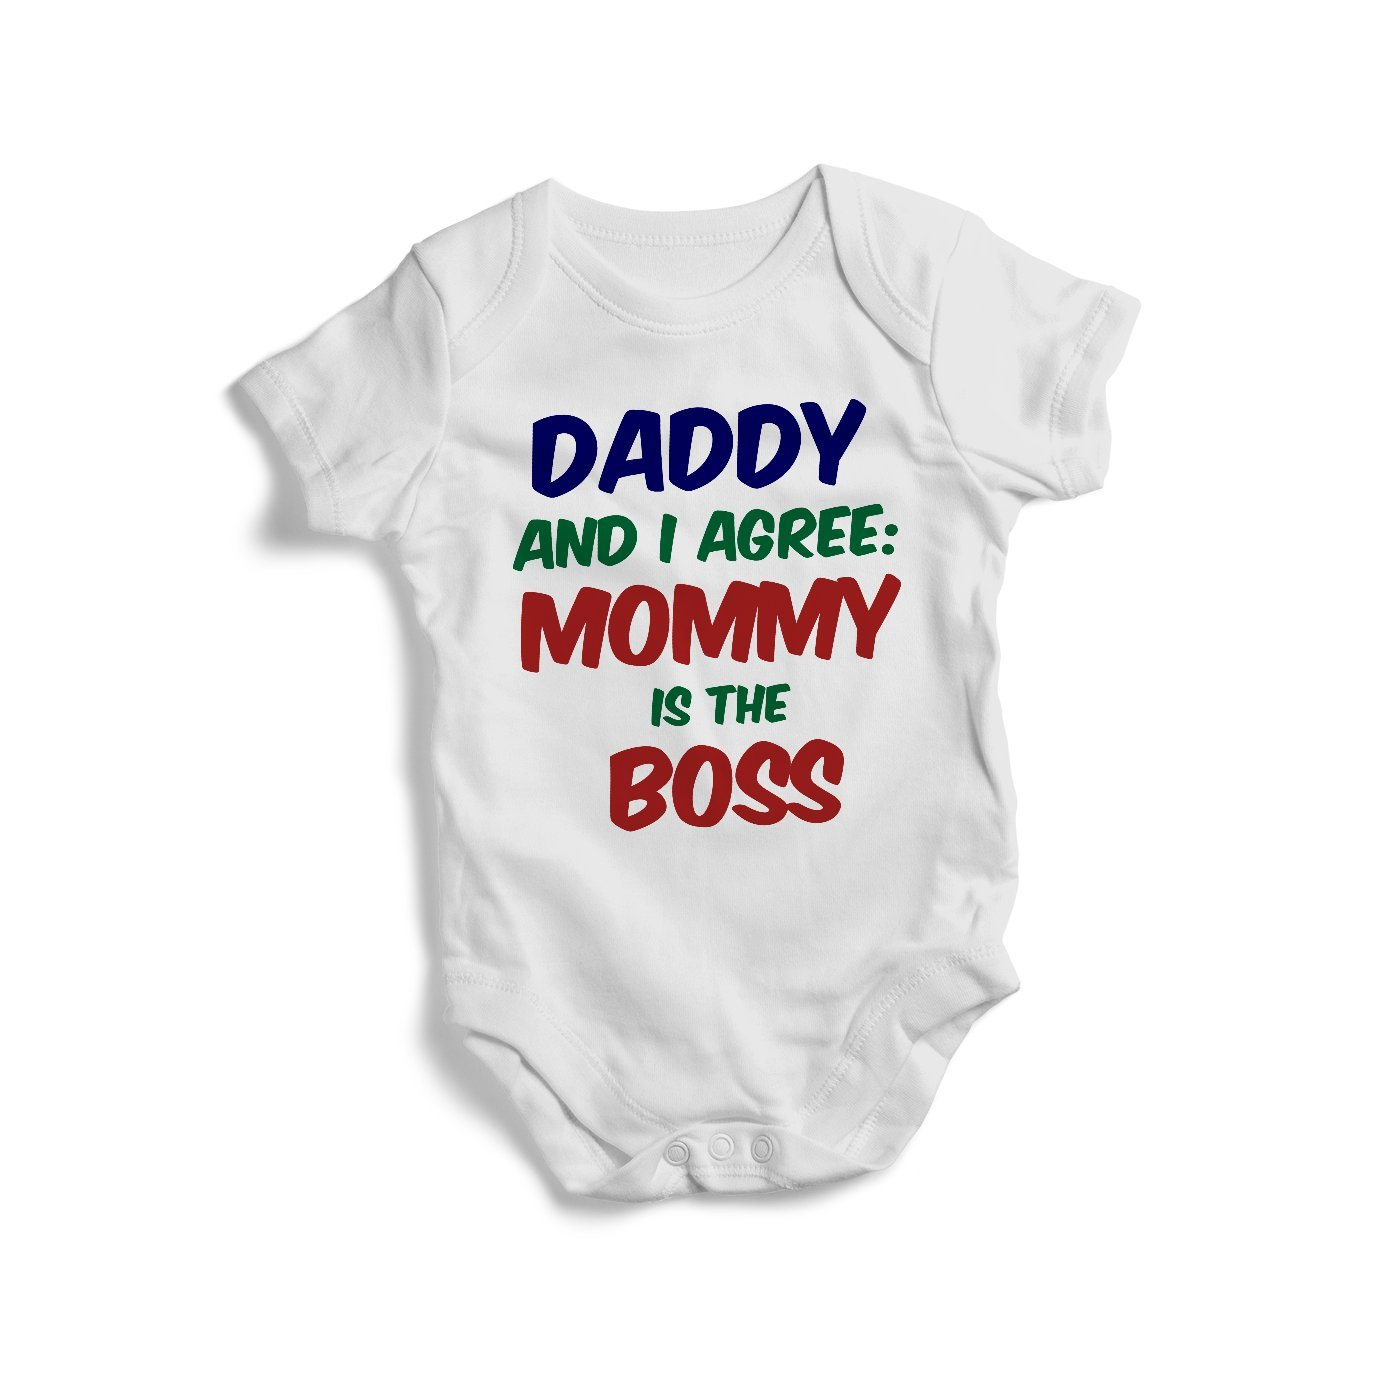 f9cdb877f Amazon.com: Daddy's and i agree mommy is the boss colourful baby onesie  bodysuit baby onesie for game fan gift for new born. print (New Born long  sleeves): ...